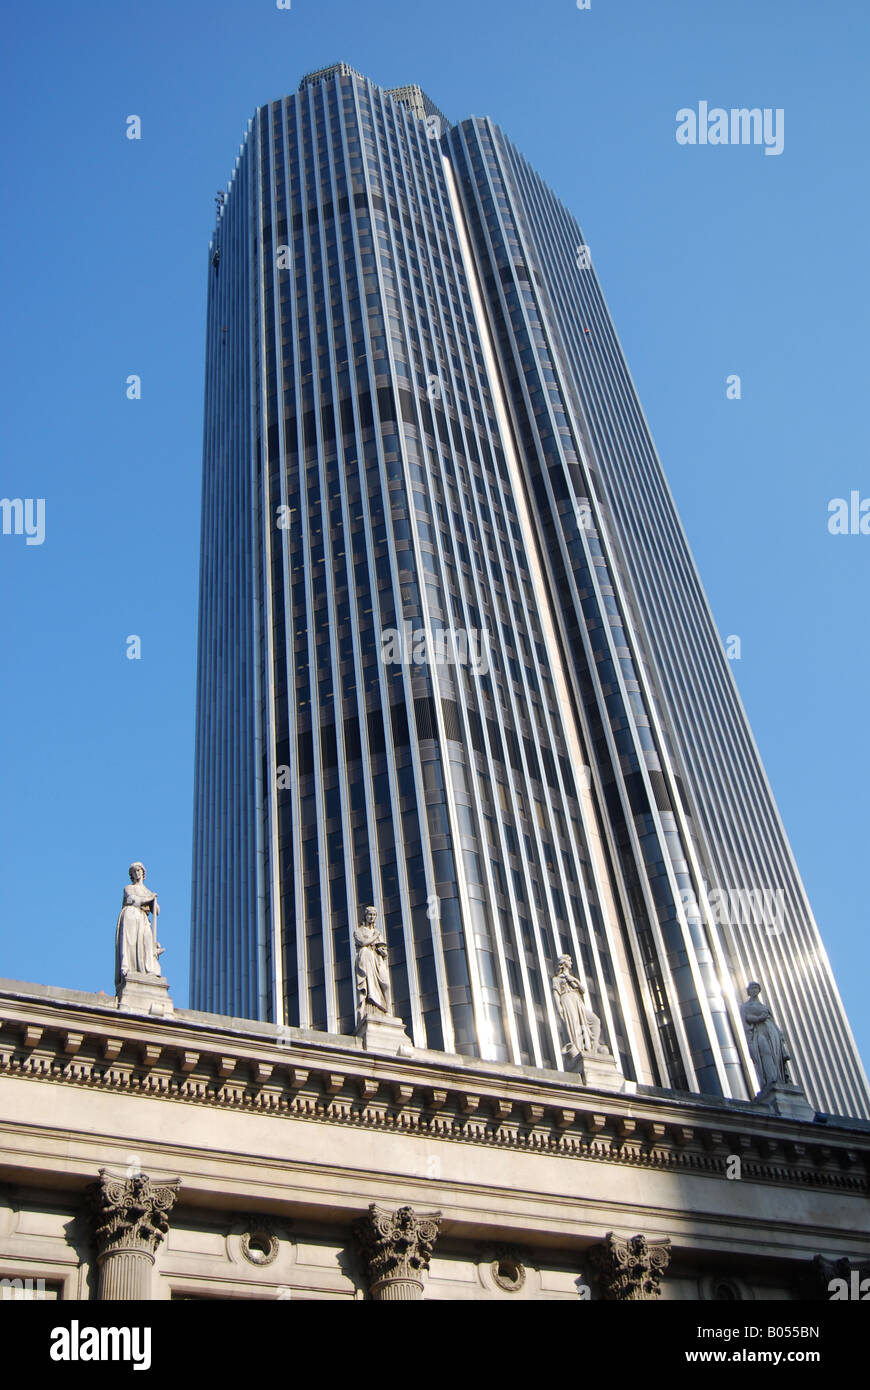 Natwest tower bank finance money power credit debt 'credit crunch' recession cash - Stock Image